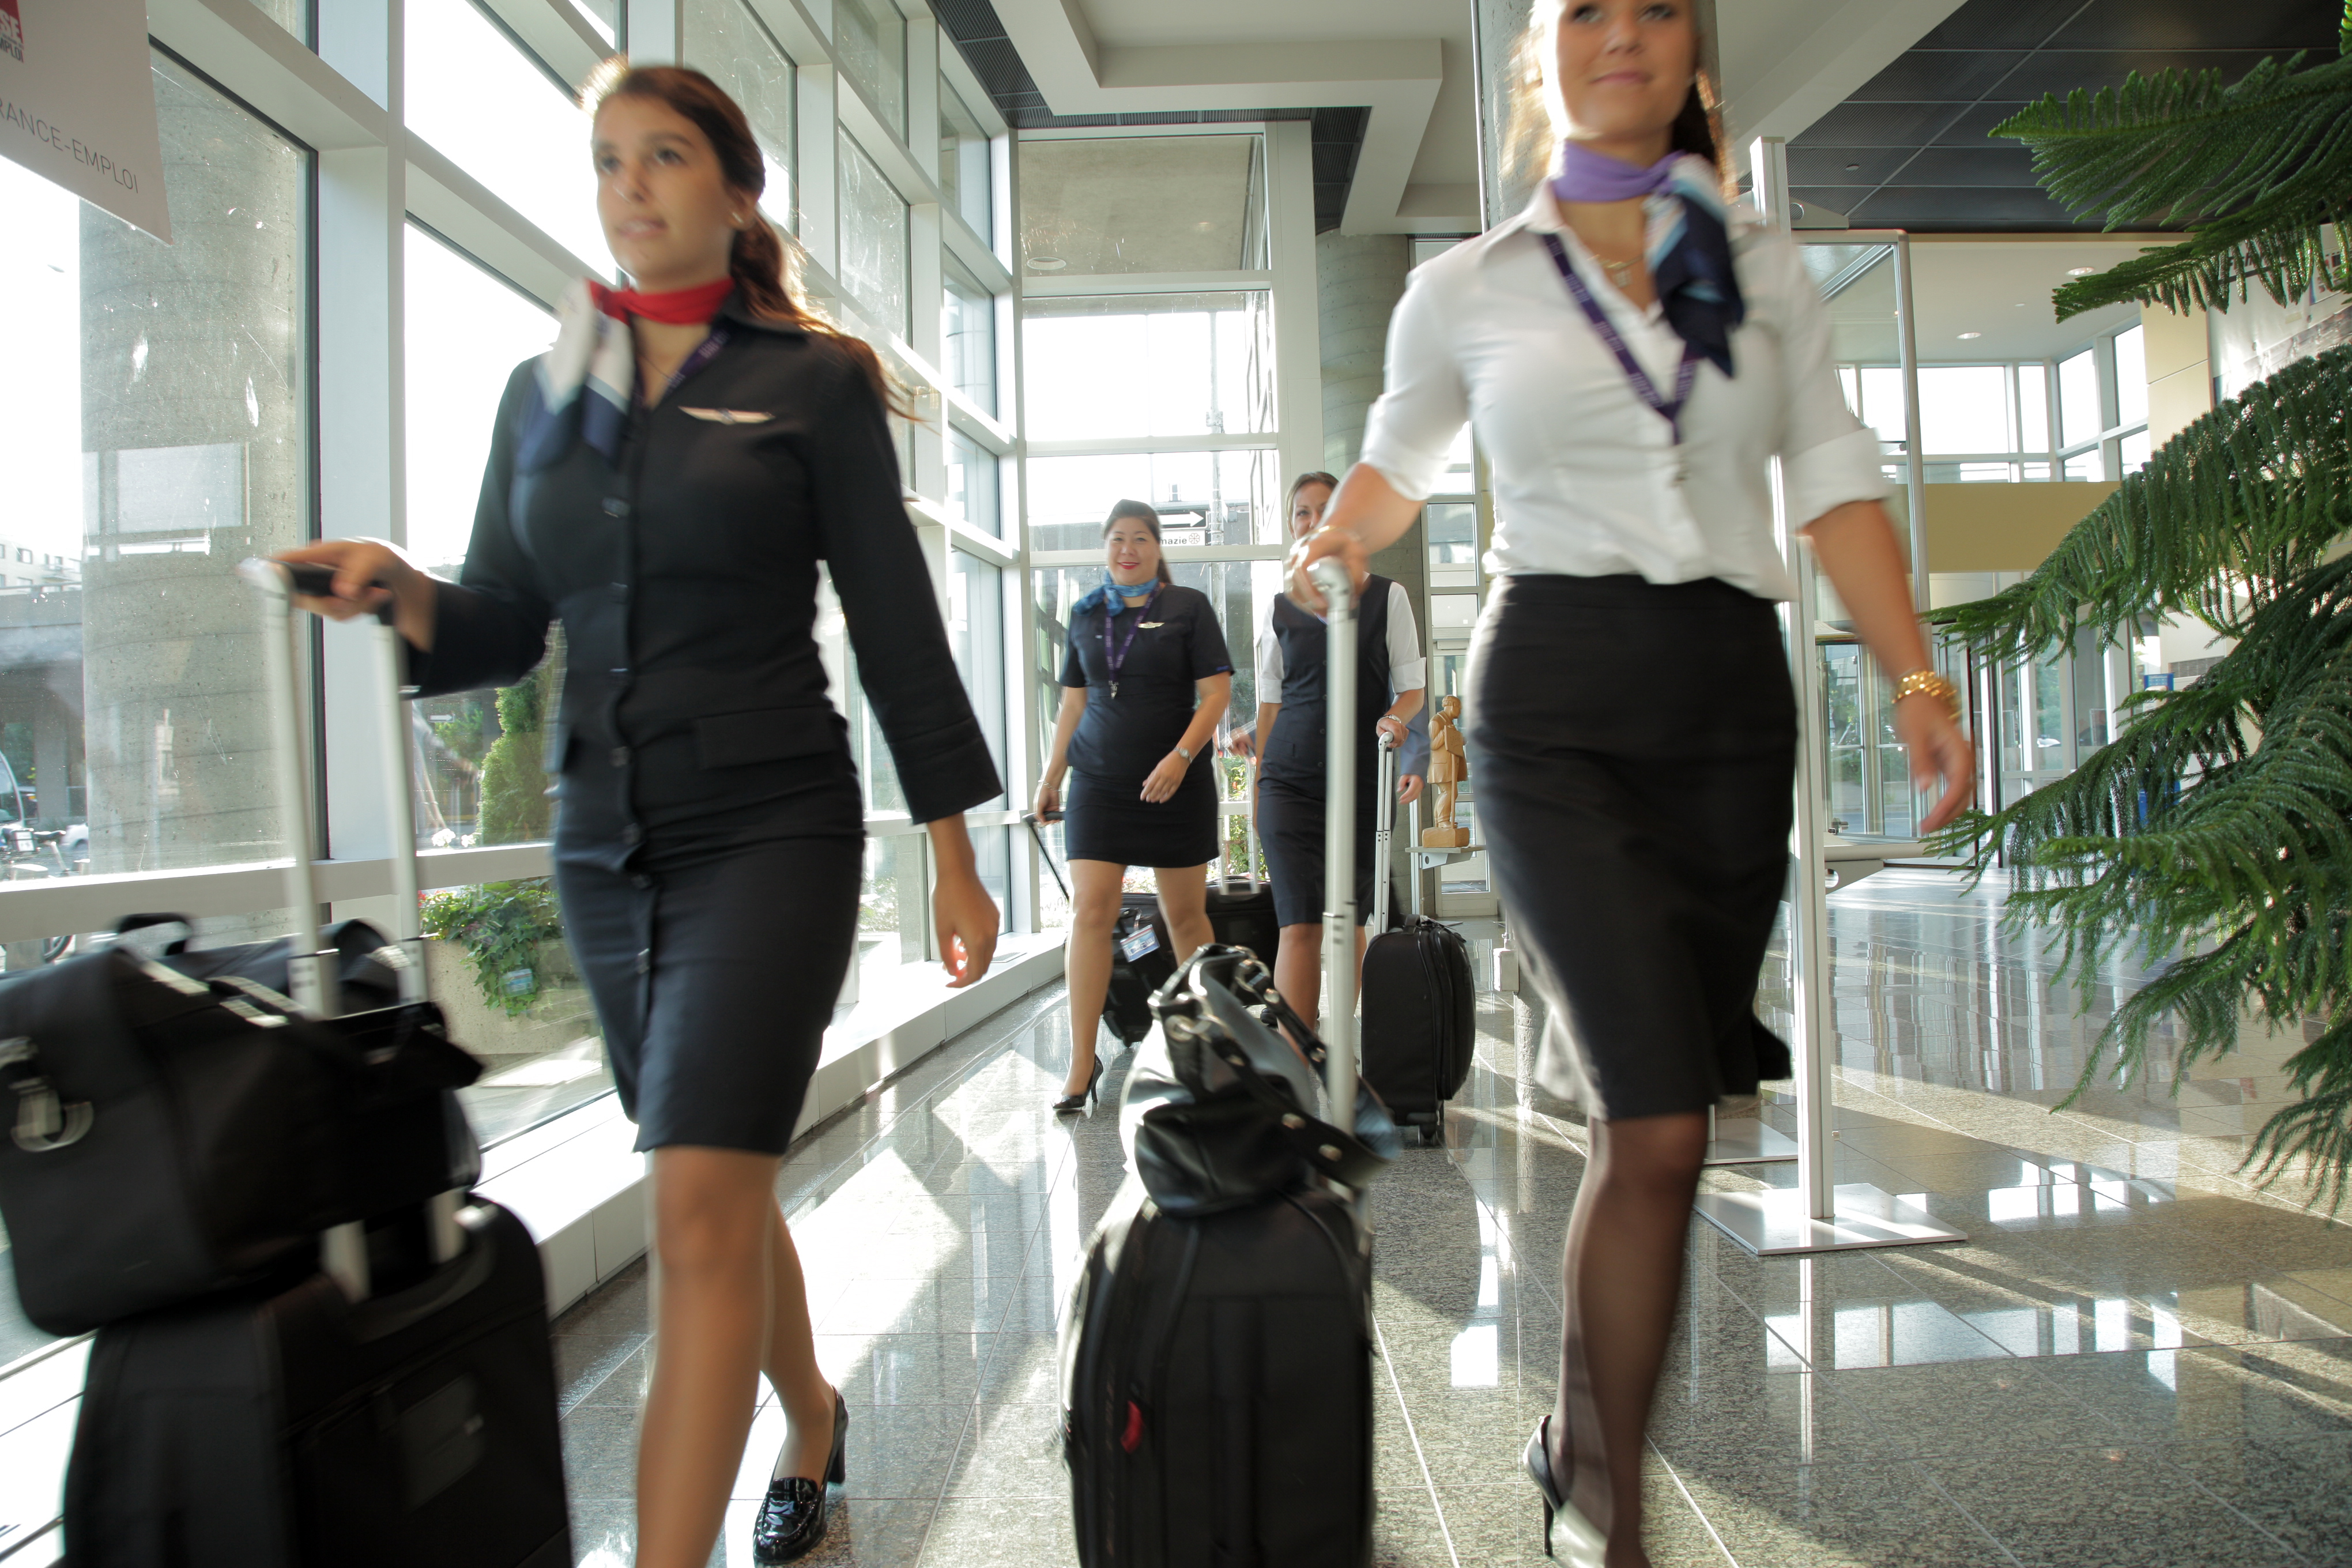 Four female flight attendants walking down a sunlit hallway with suitcases